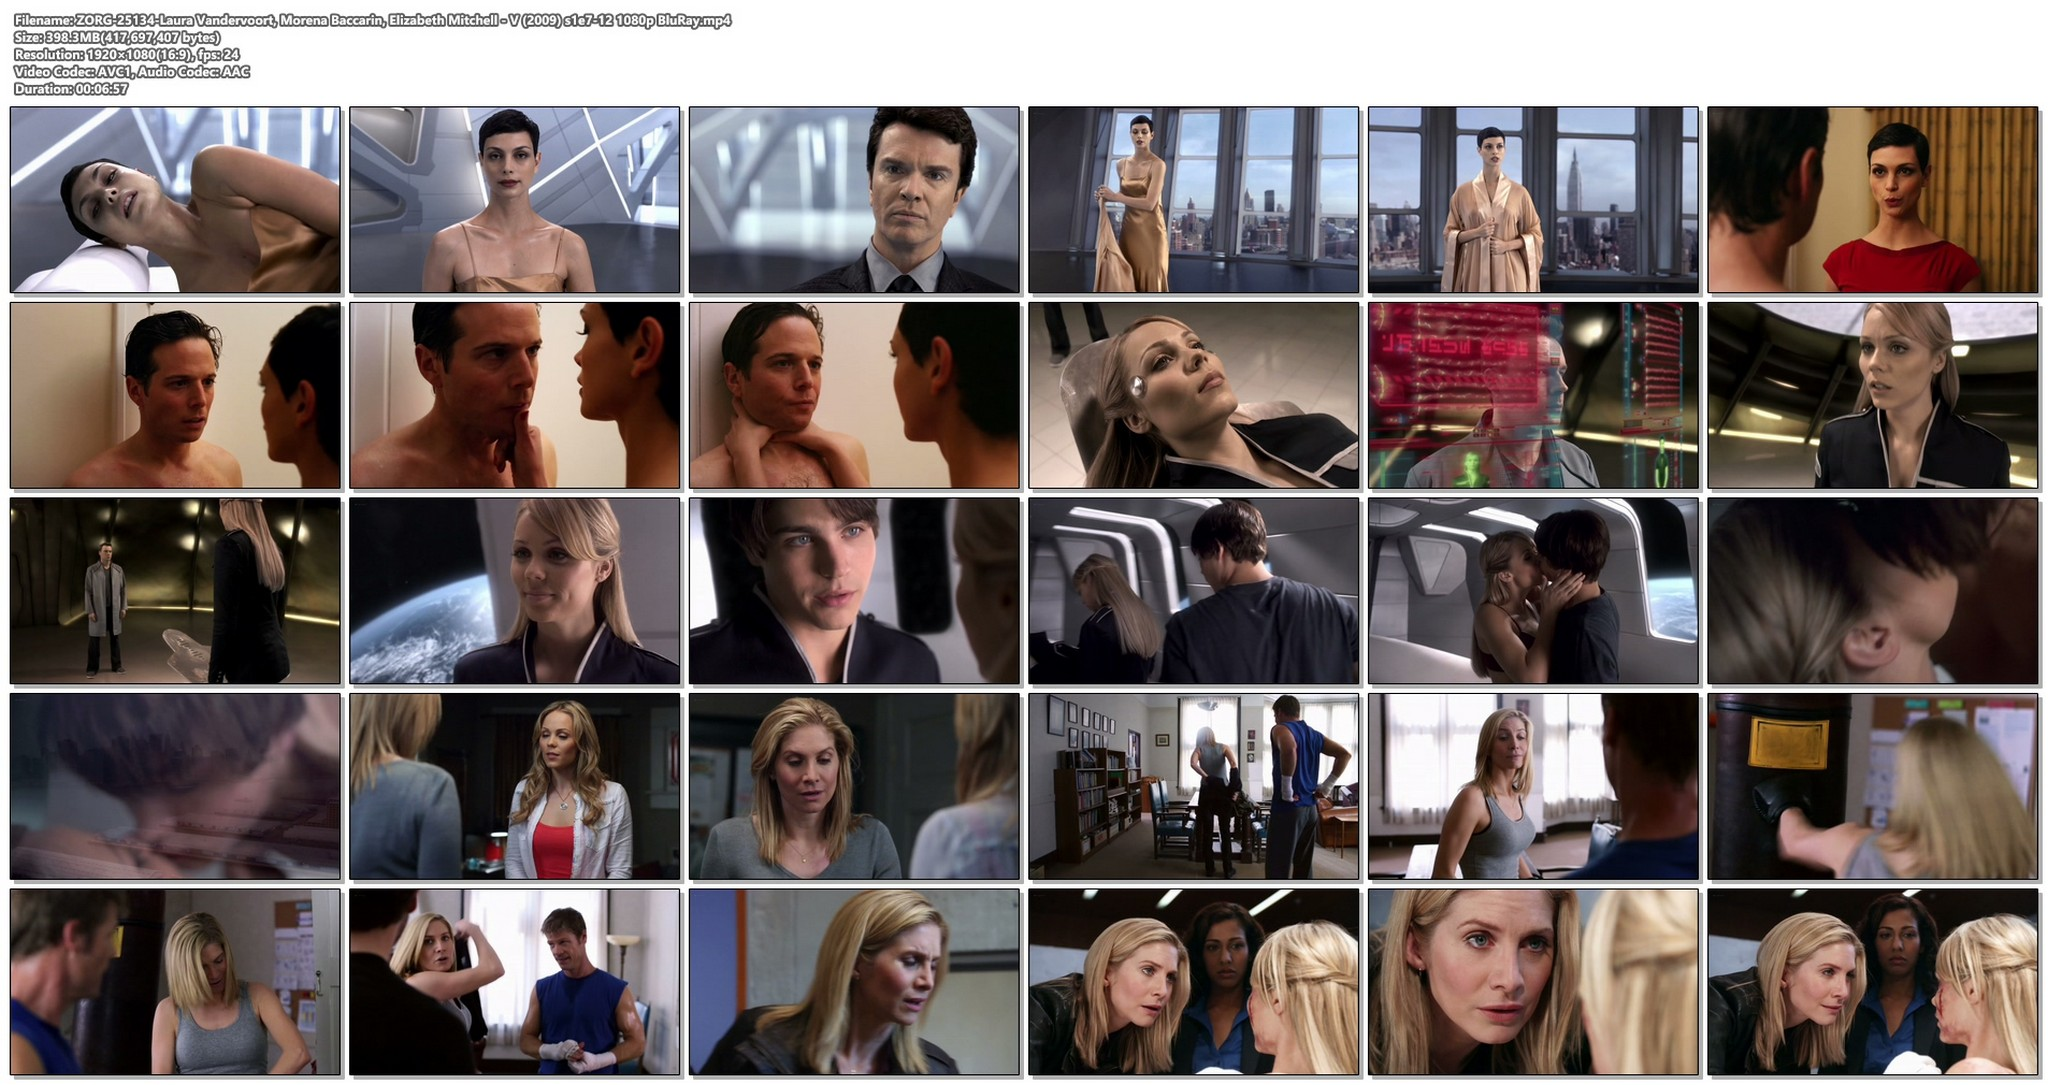 Laura Vandervoort hot and sex Morena Baccarin Elizabeth Mitchell sexy V 2009 s1e7 12 1080p BluRay 19